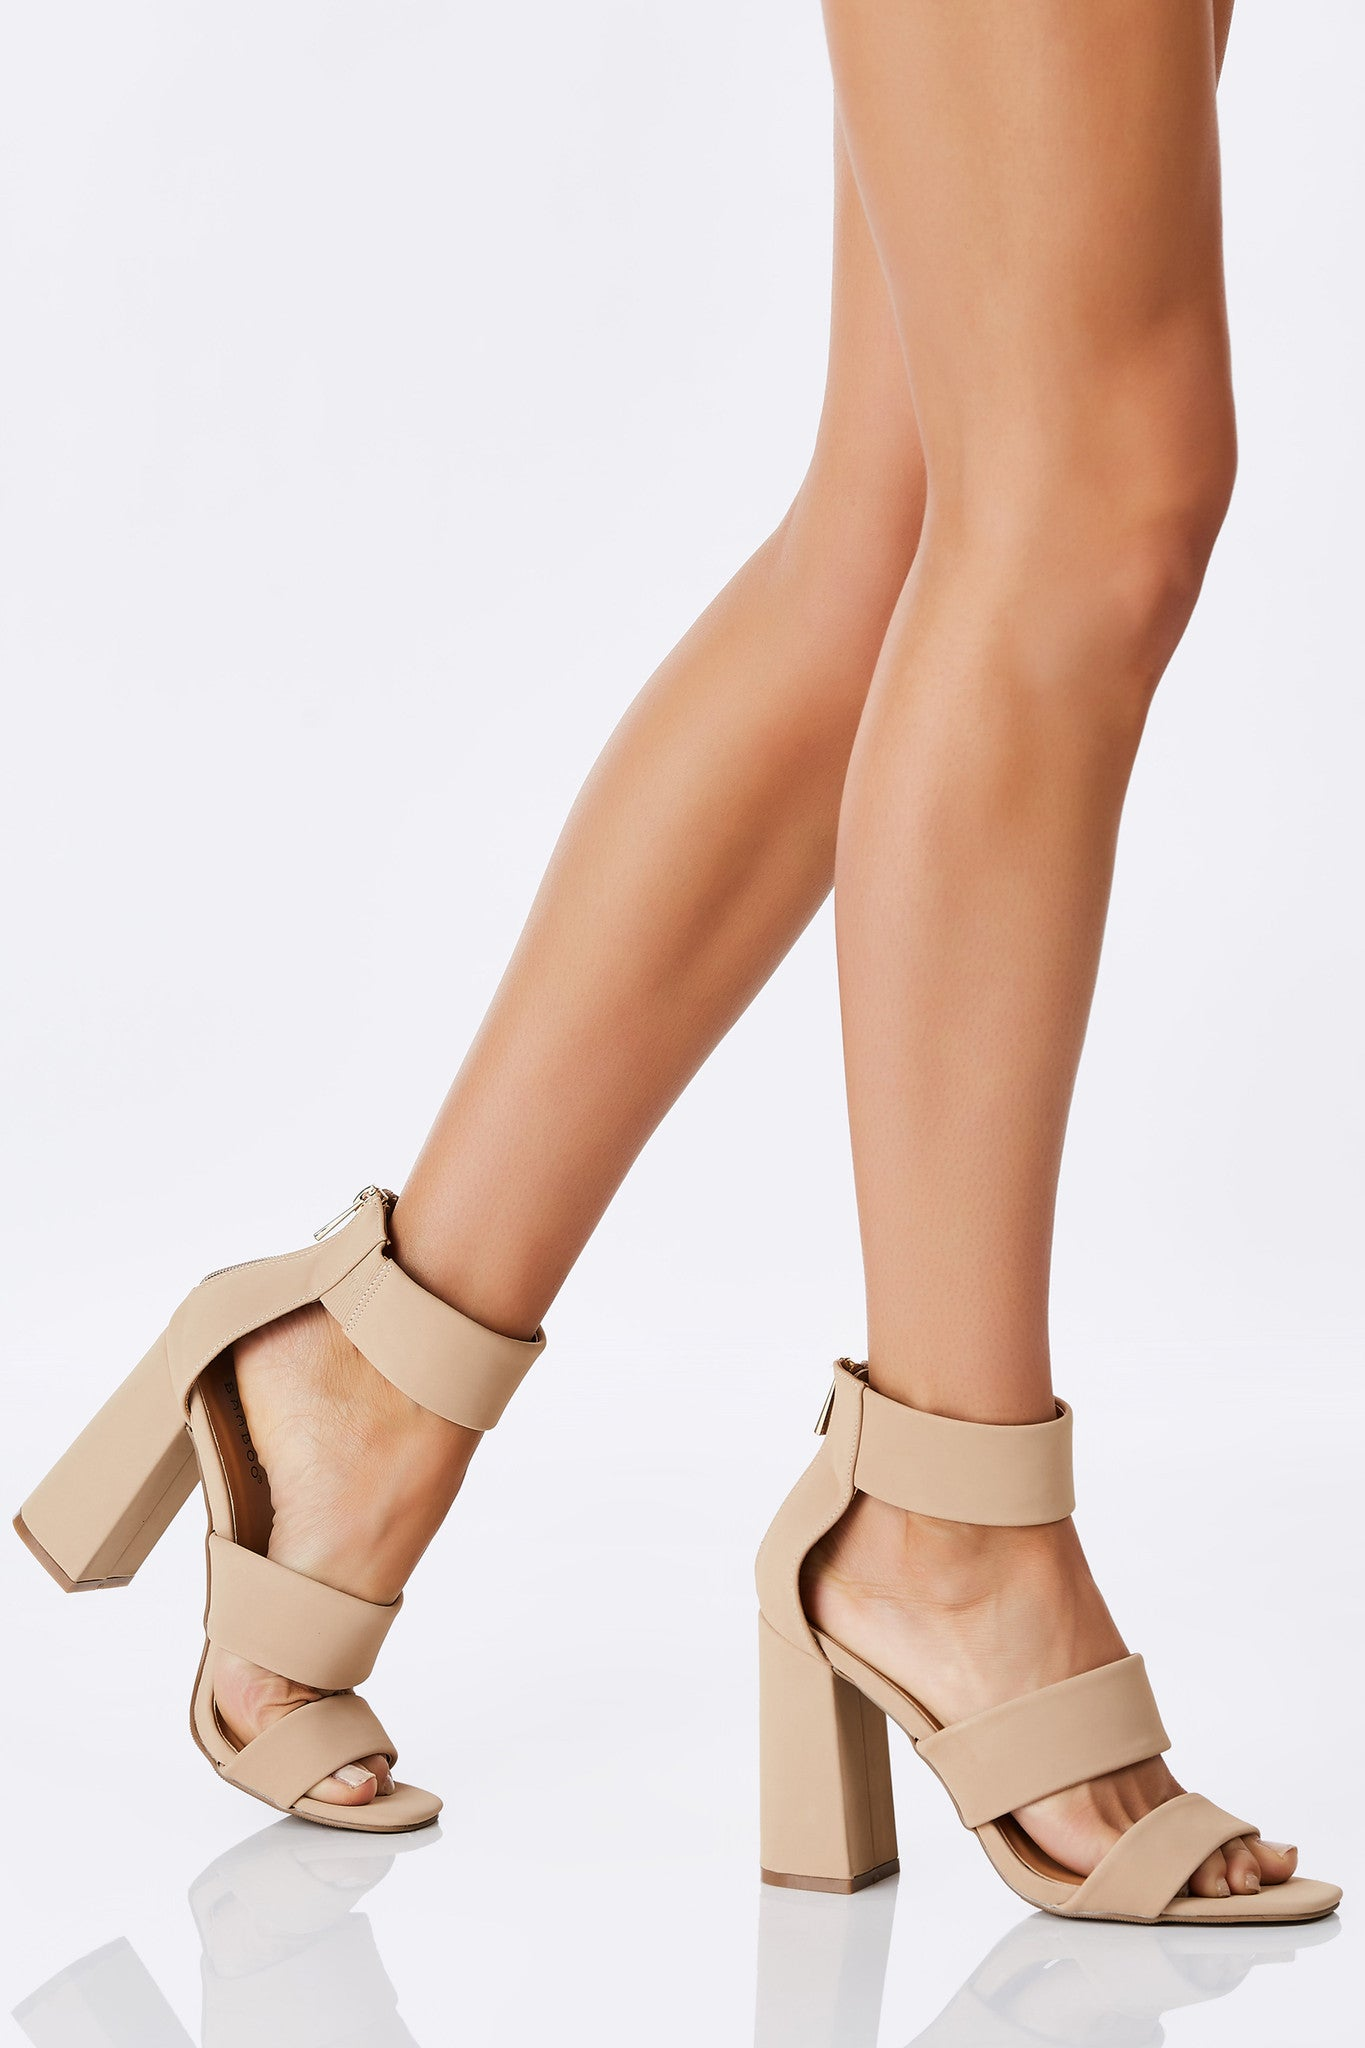 Every shoe-lovers dream pair of heeled sandals. Chic three strap design with a trendy chunky heel. Easy single zip closure. Perfect to dress up any outfit in comfort.